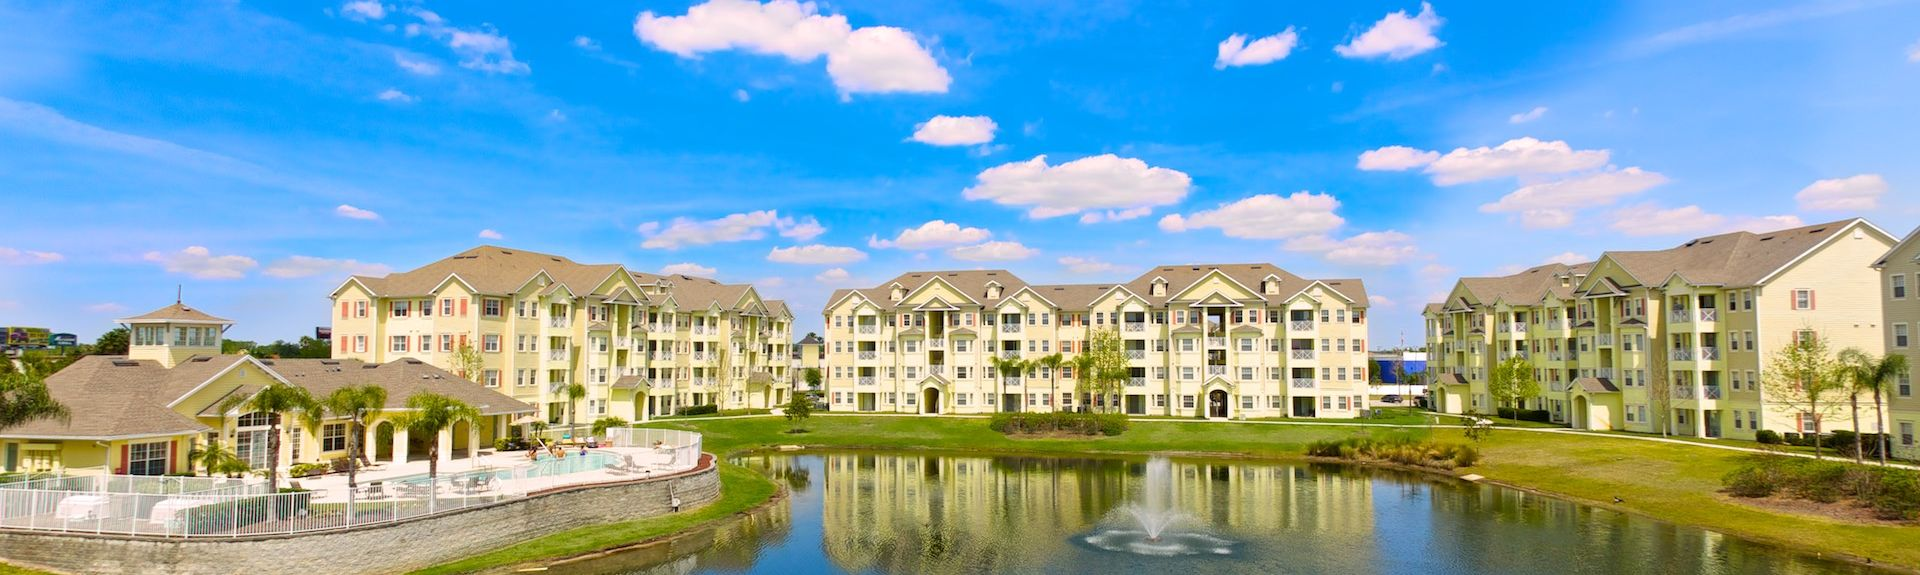 Cane Island Condominiums, Kissimmee, Florida, United States of America